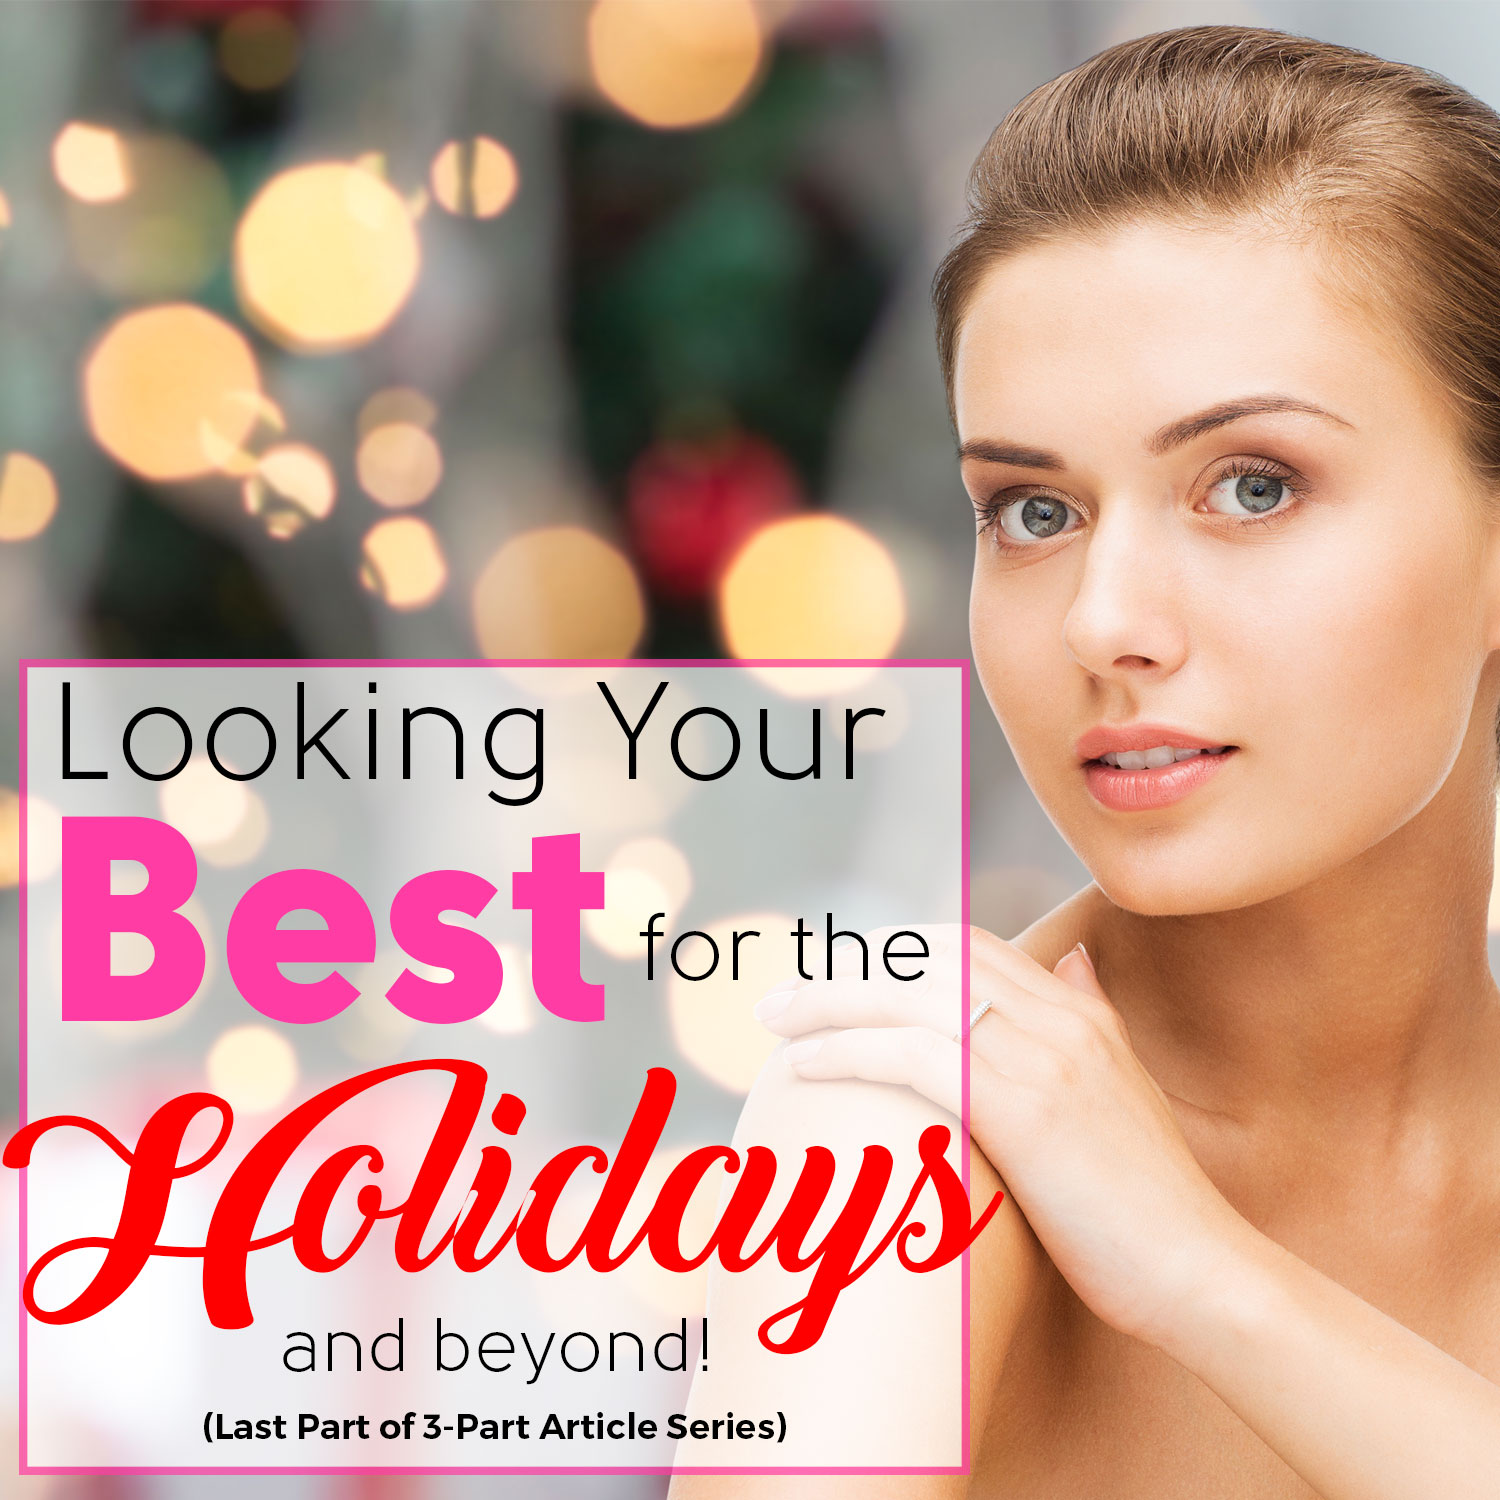 Looking Your Best for the Holidays and Beyond!